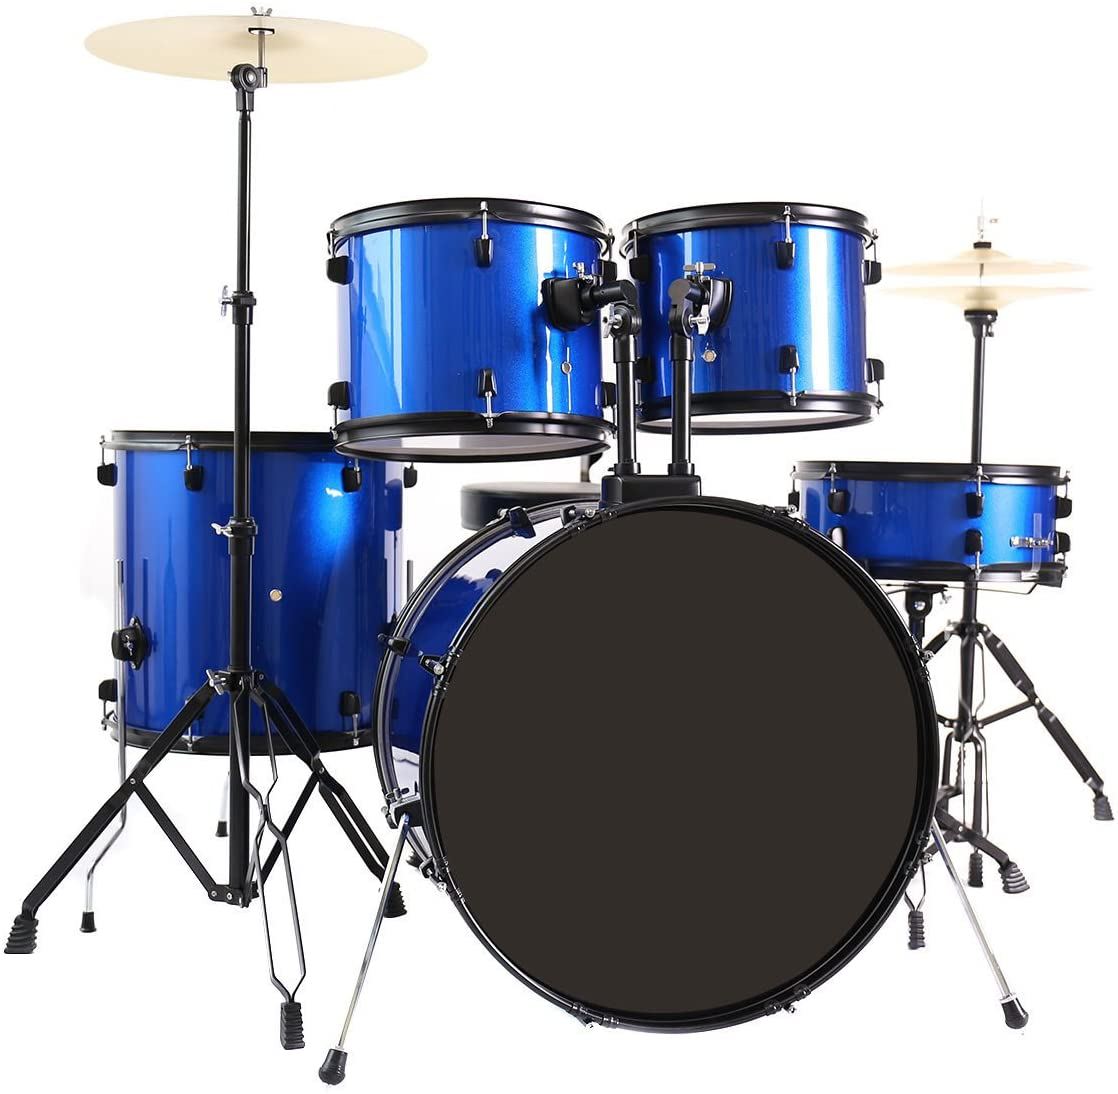 Costzon Full Size Complete Adult 5 Piece Drum Set | Drums For Beginner